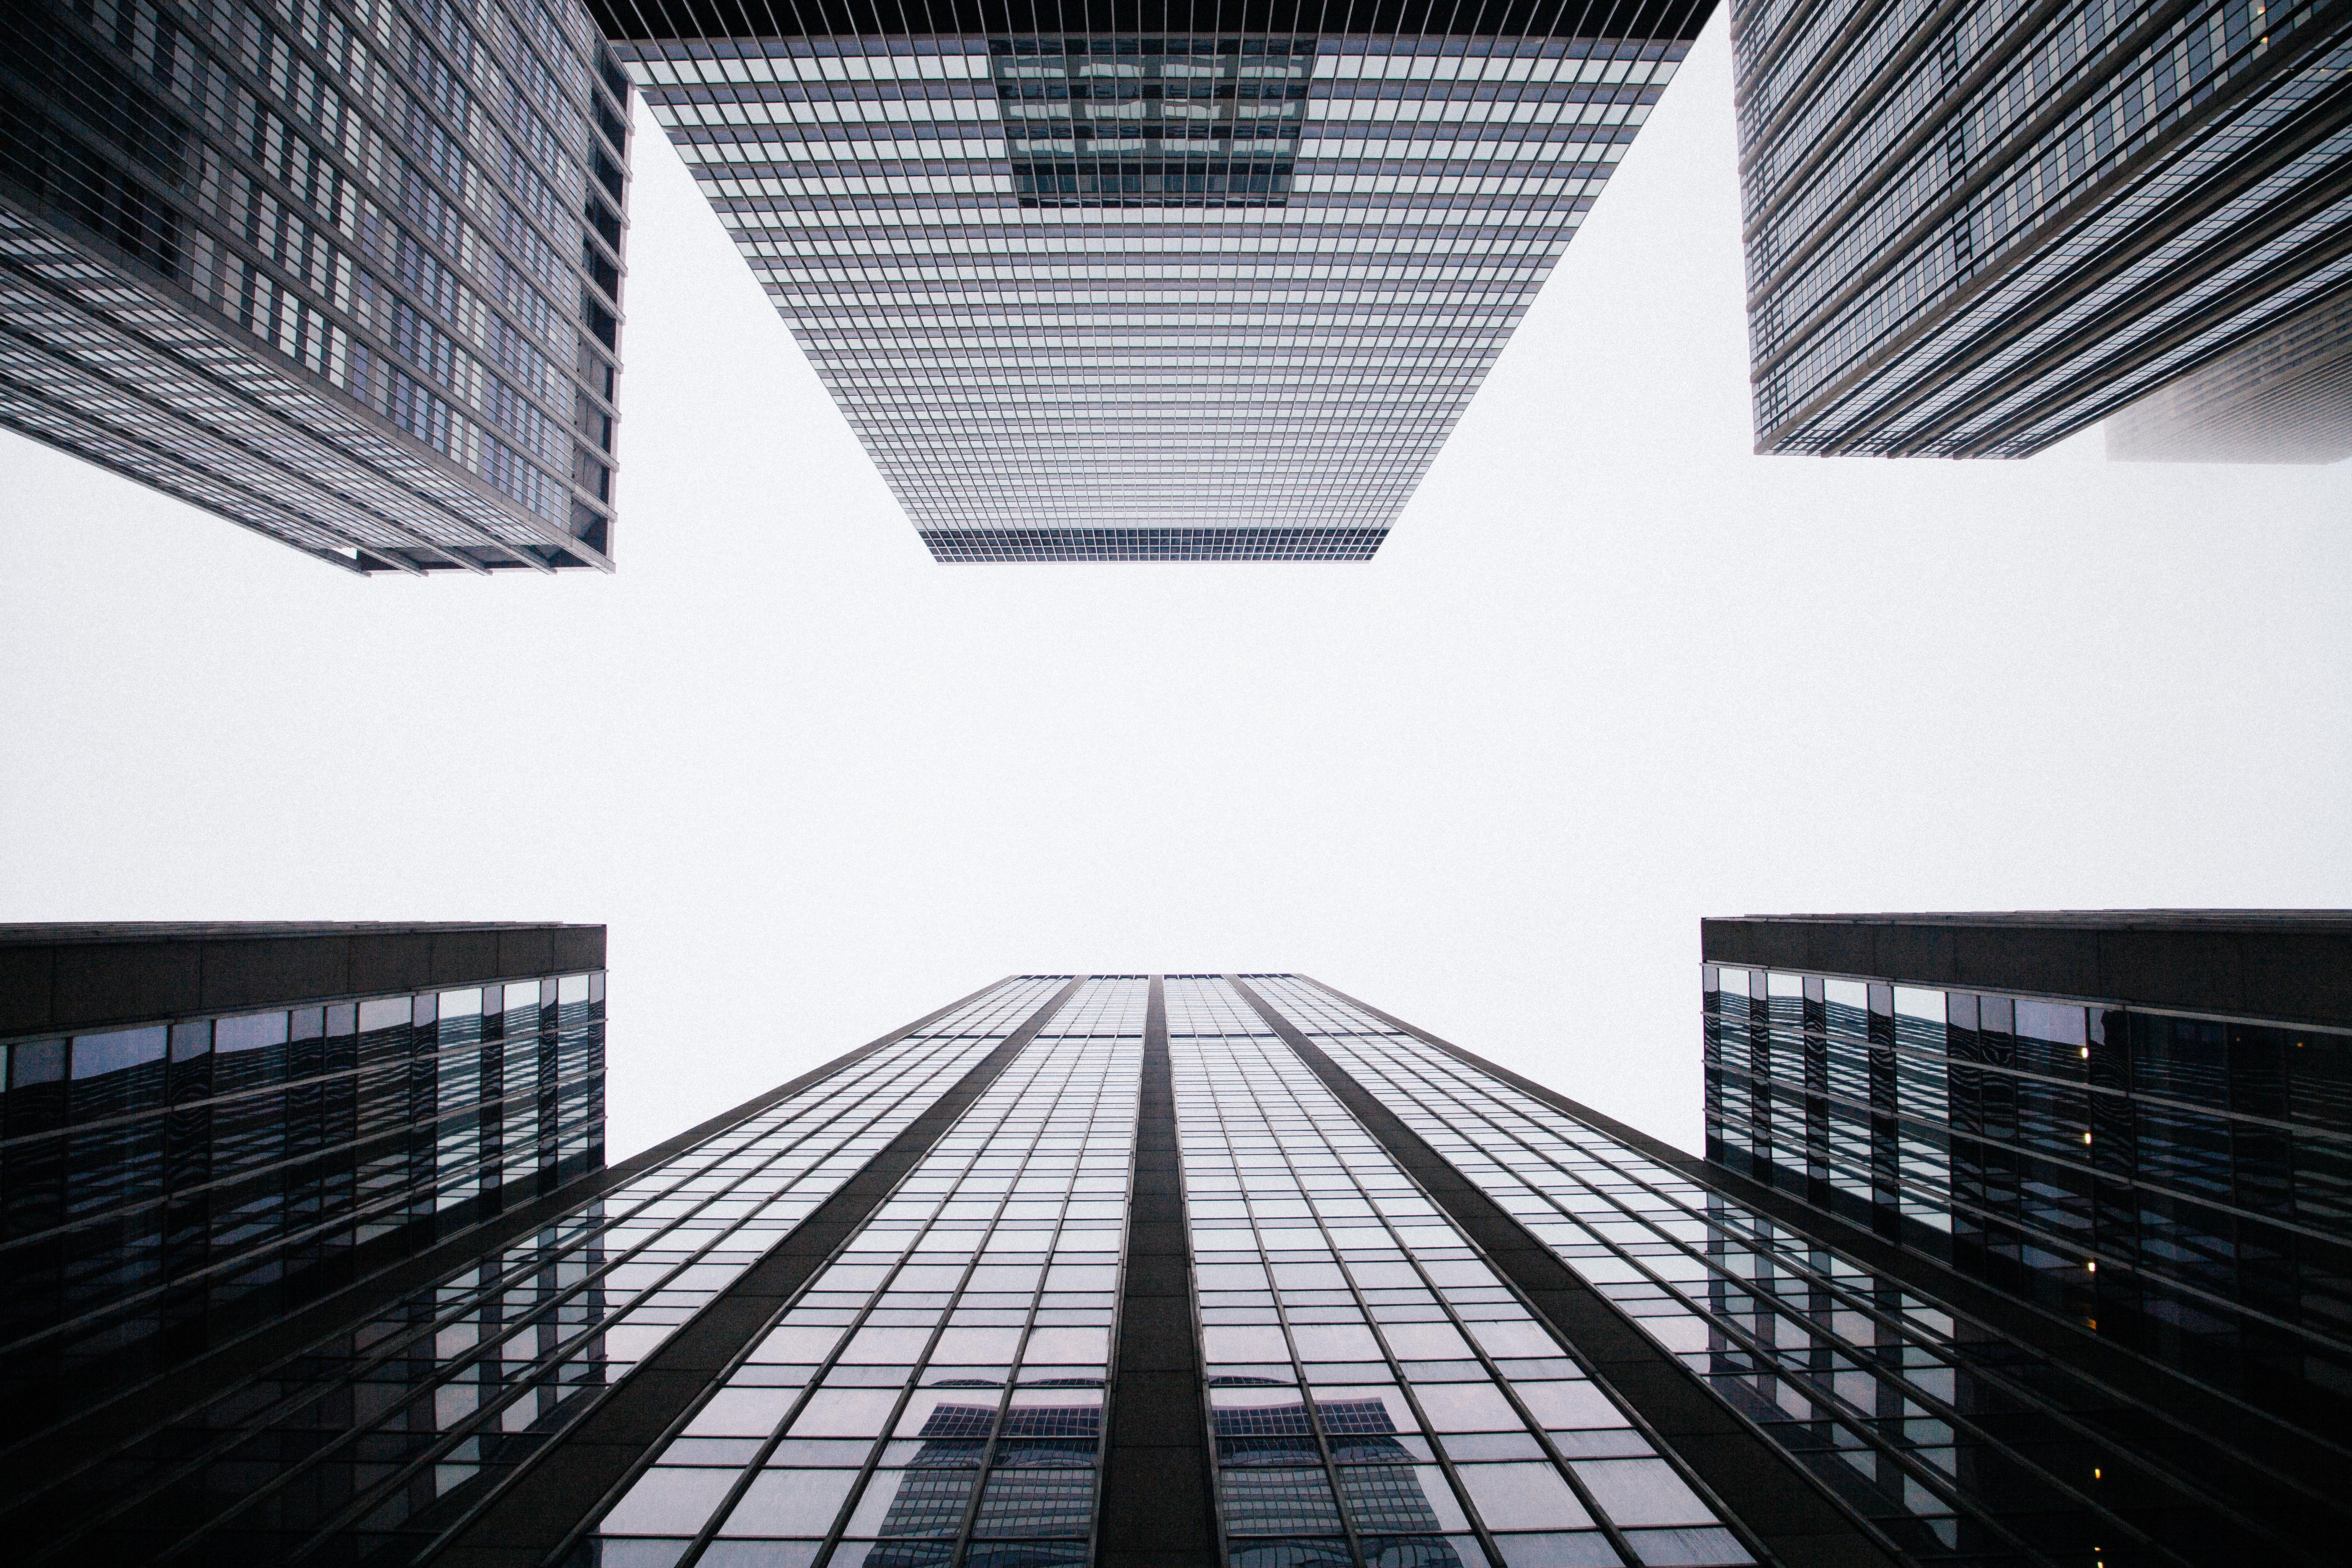 worm's eye view of buildings